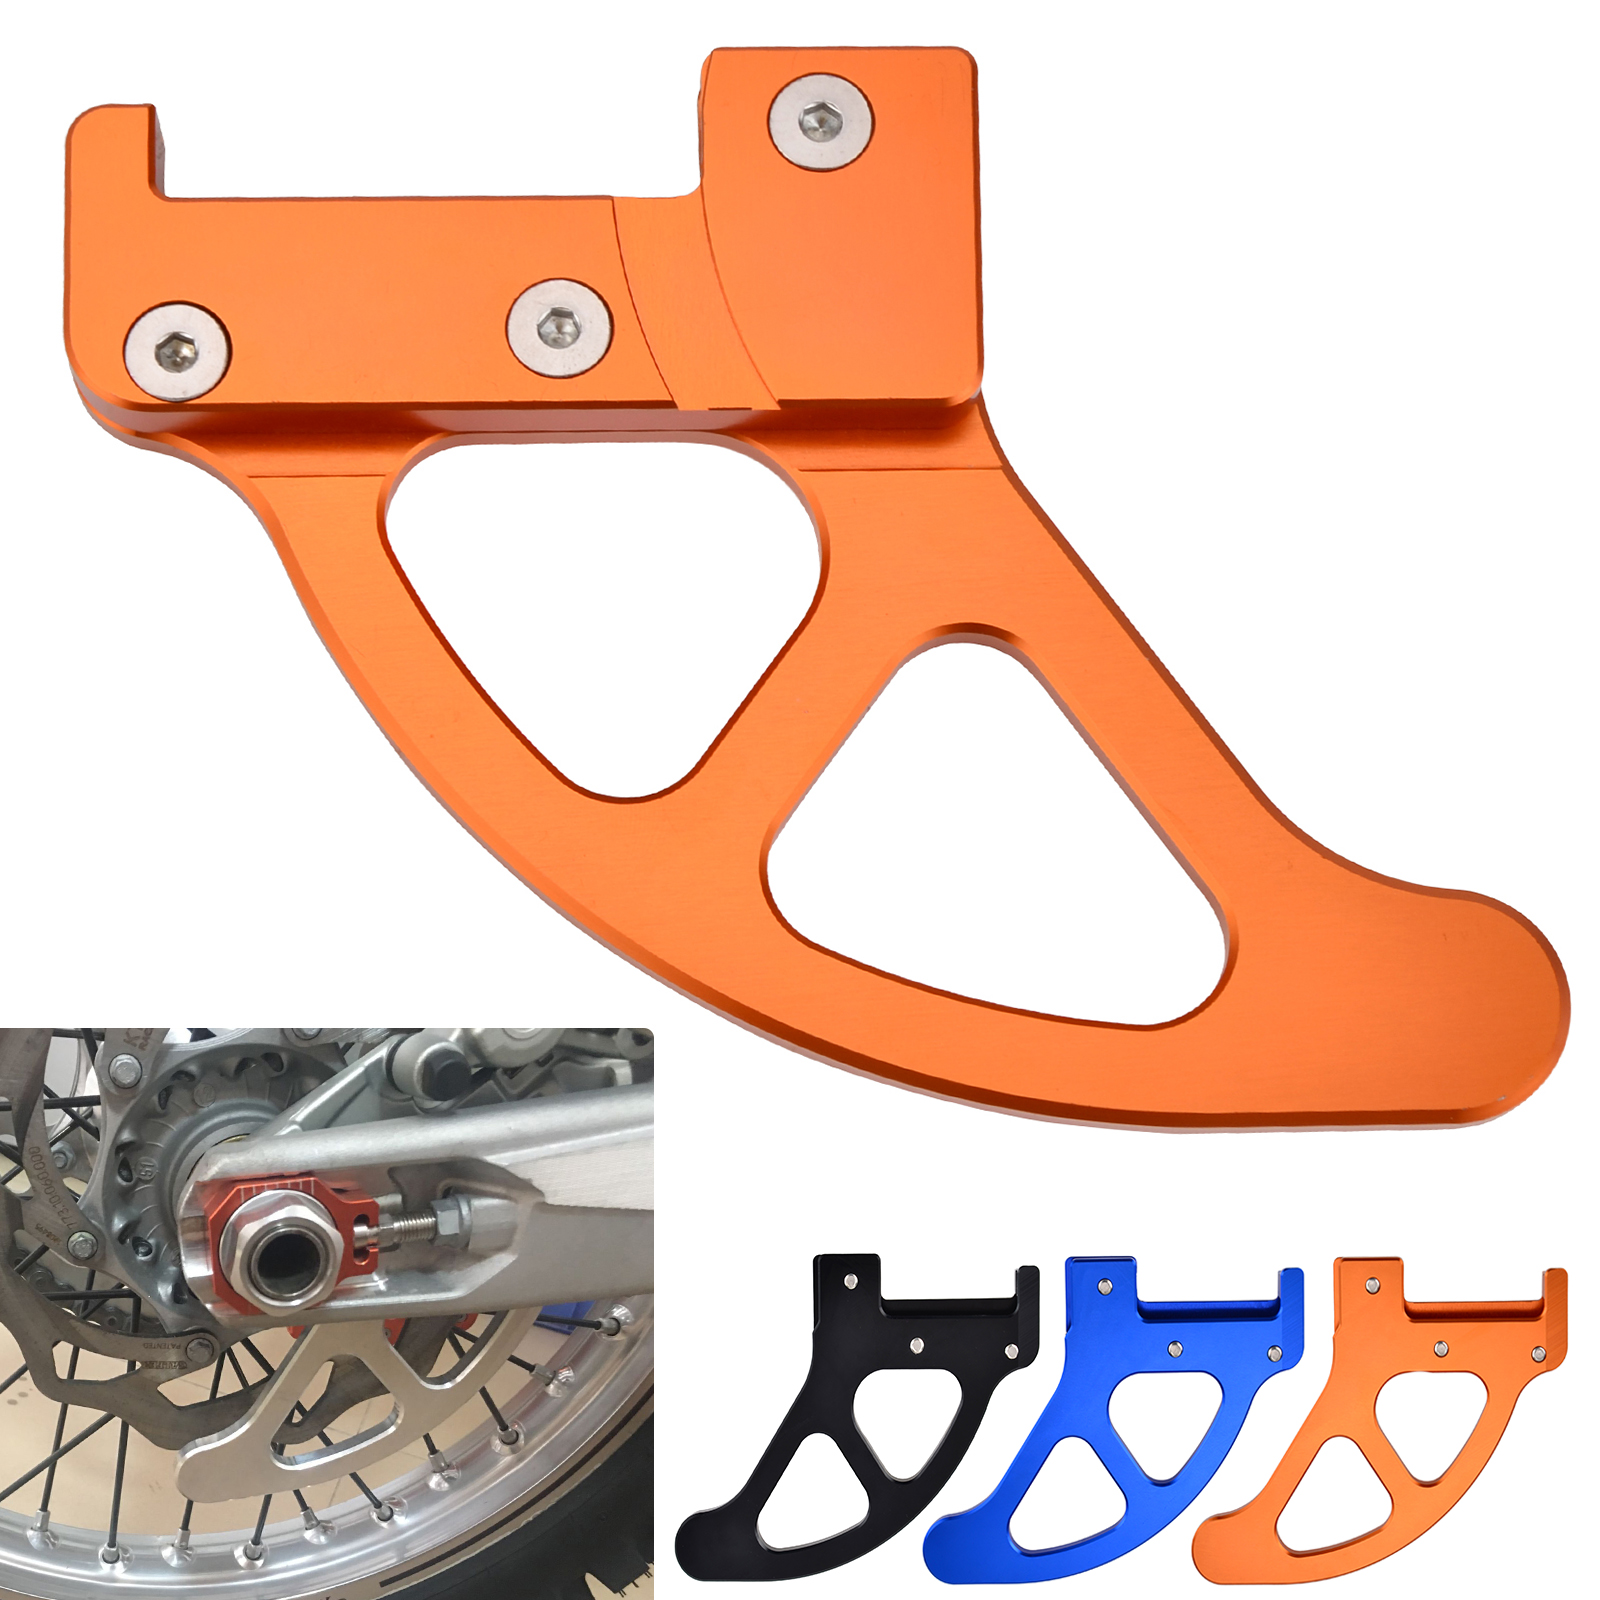 NICECNC Rear Brake Disc Guard Protector For KTM 125 200 250 300 350 400 450 525 530 EXC EXCF SX SXF XC XCF XCW Husqvarna 125-501 motorcycle front brake disc rotor guard brake cover brake protector for ktm 125 530 sx sxf xc xcf 03 14 125 530 exc excf 03 15